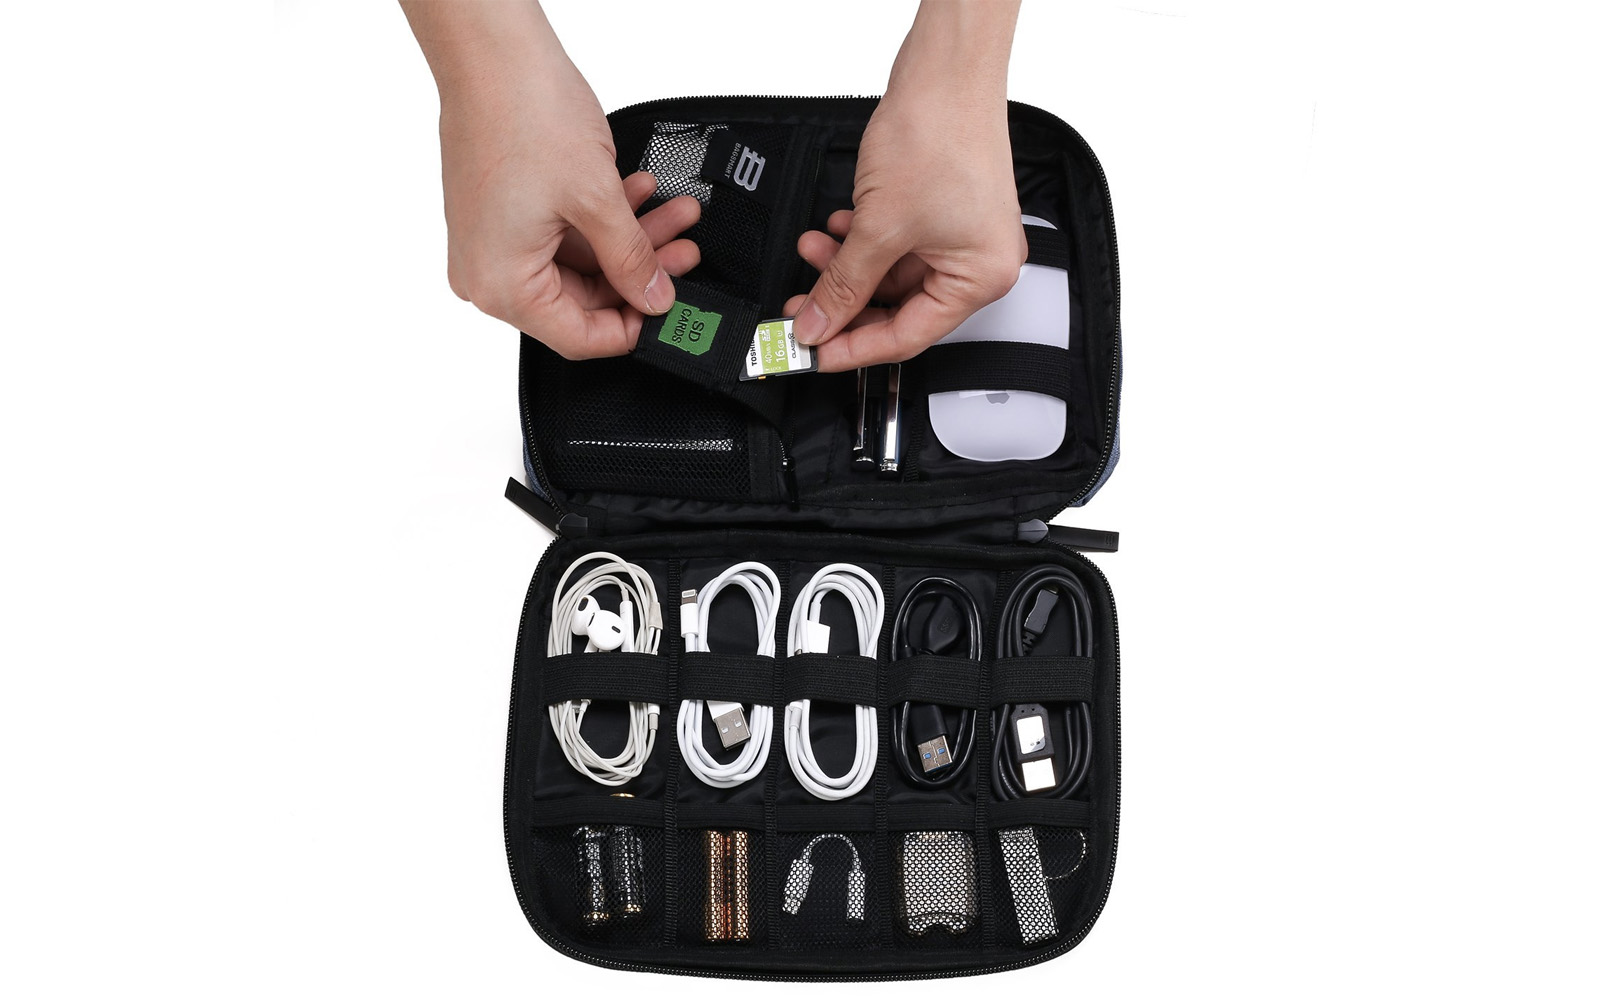 Travel + Leisure Readers Can't Get Enough of This Top-selling Travel Organizer